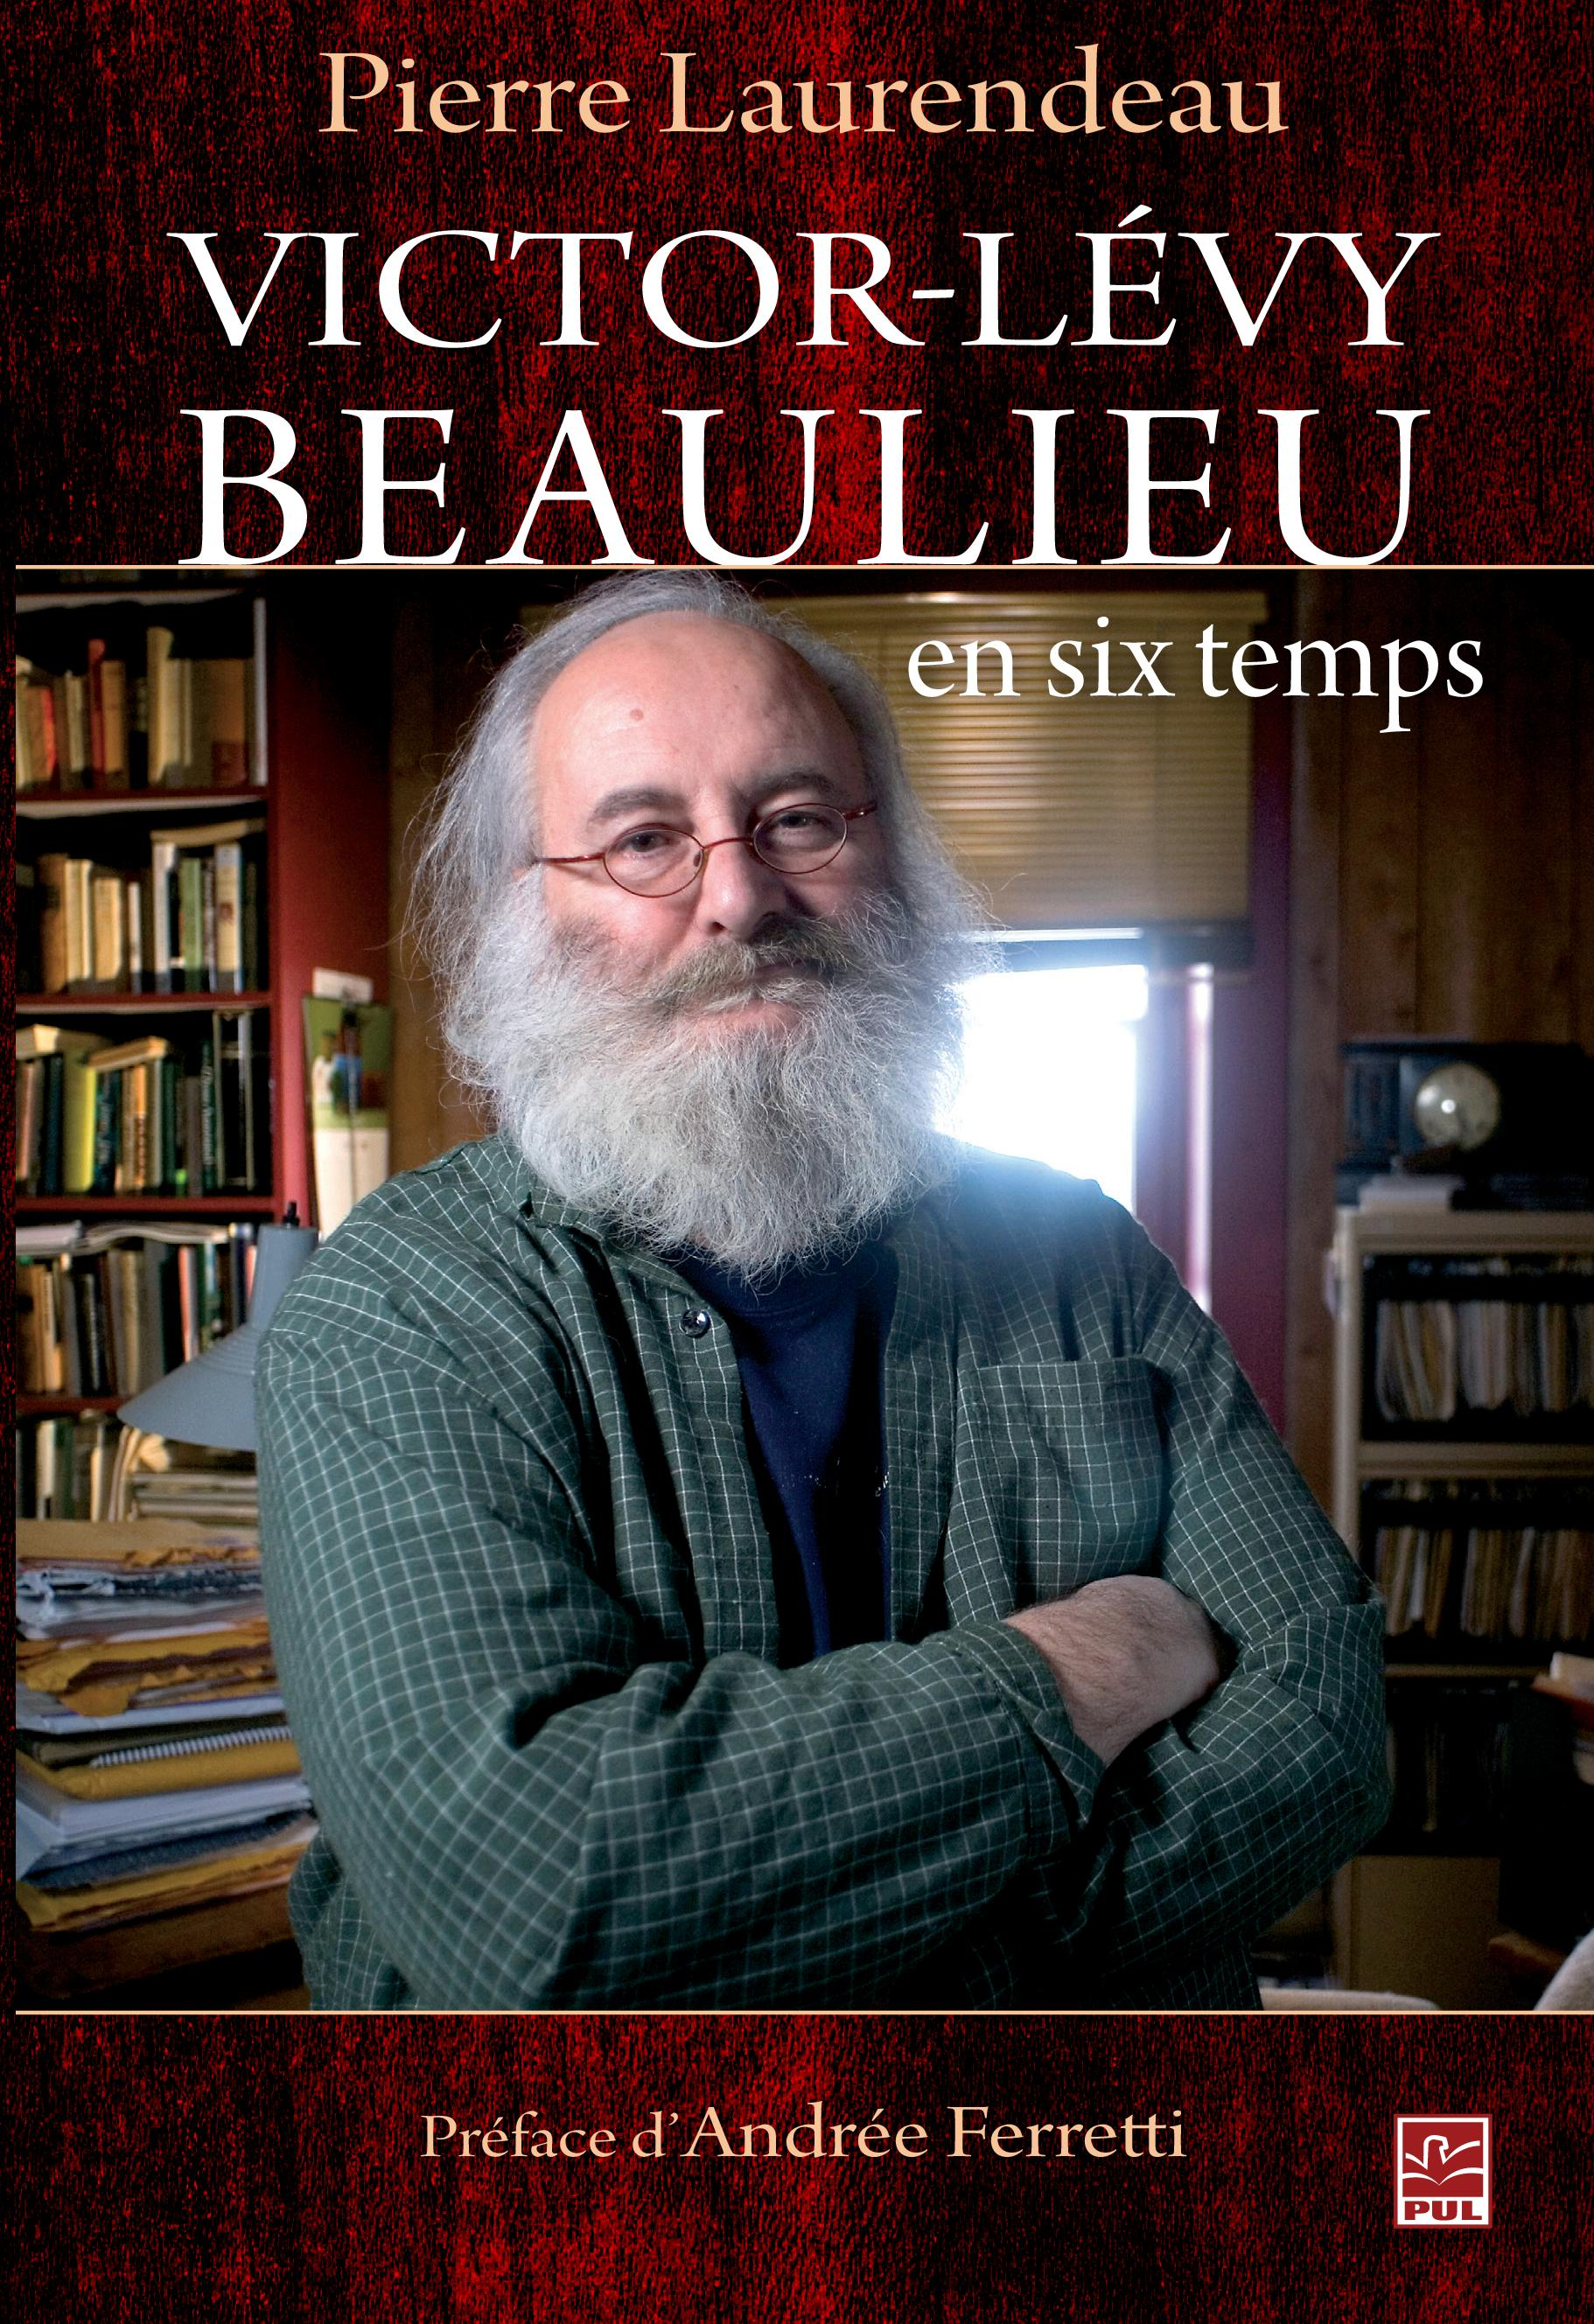 Victor-Lévy Beaulieu en six temps